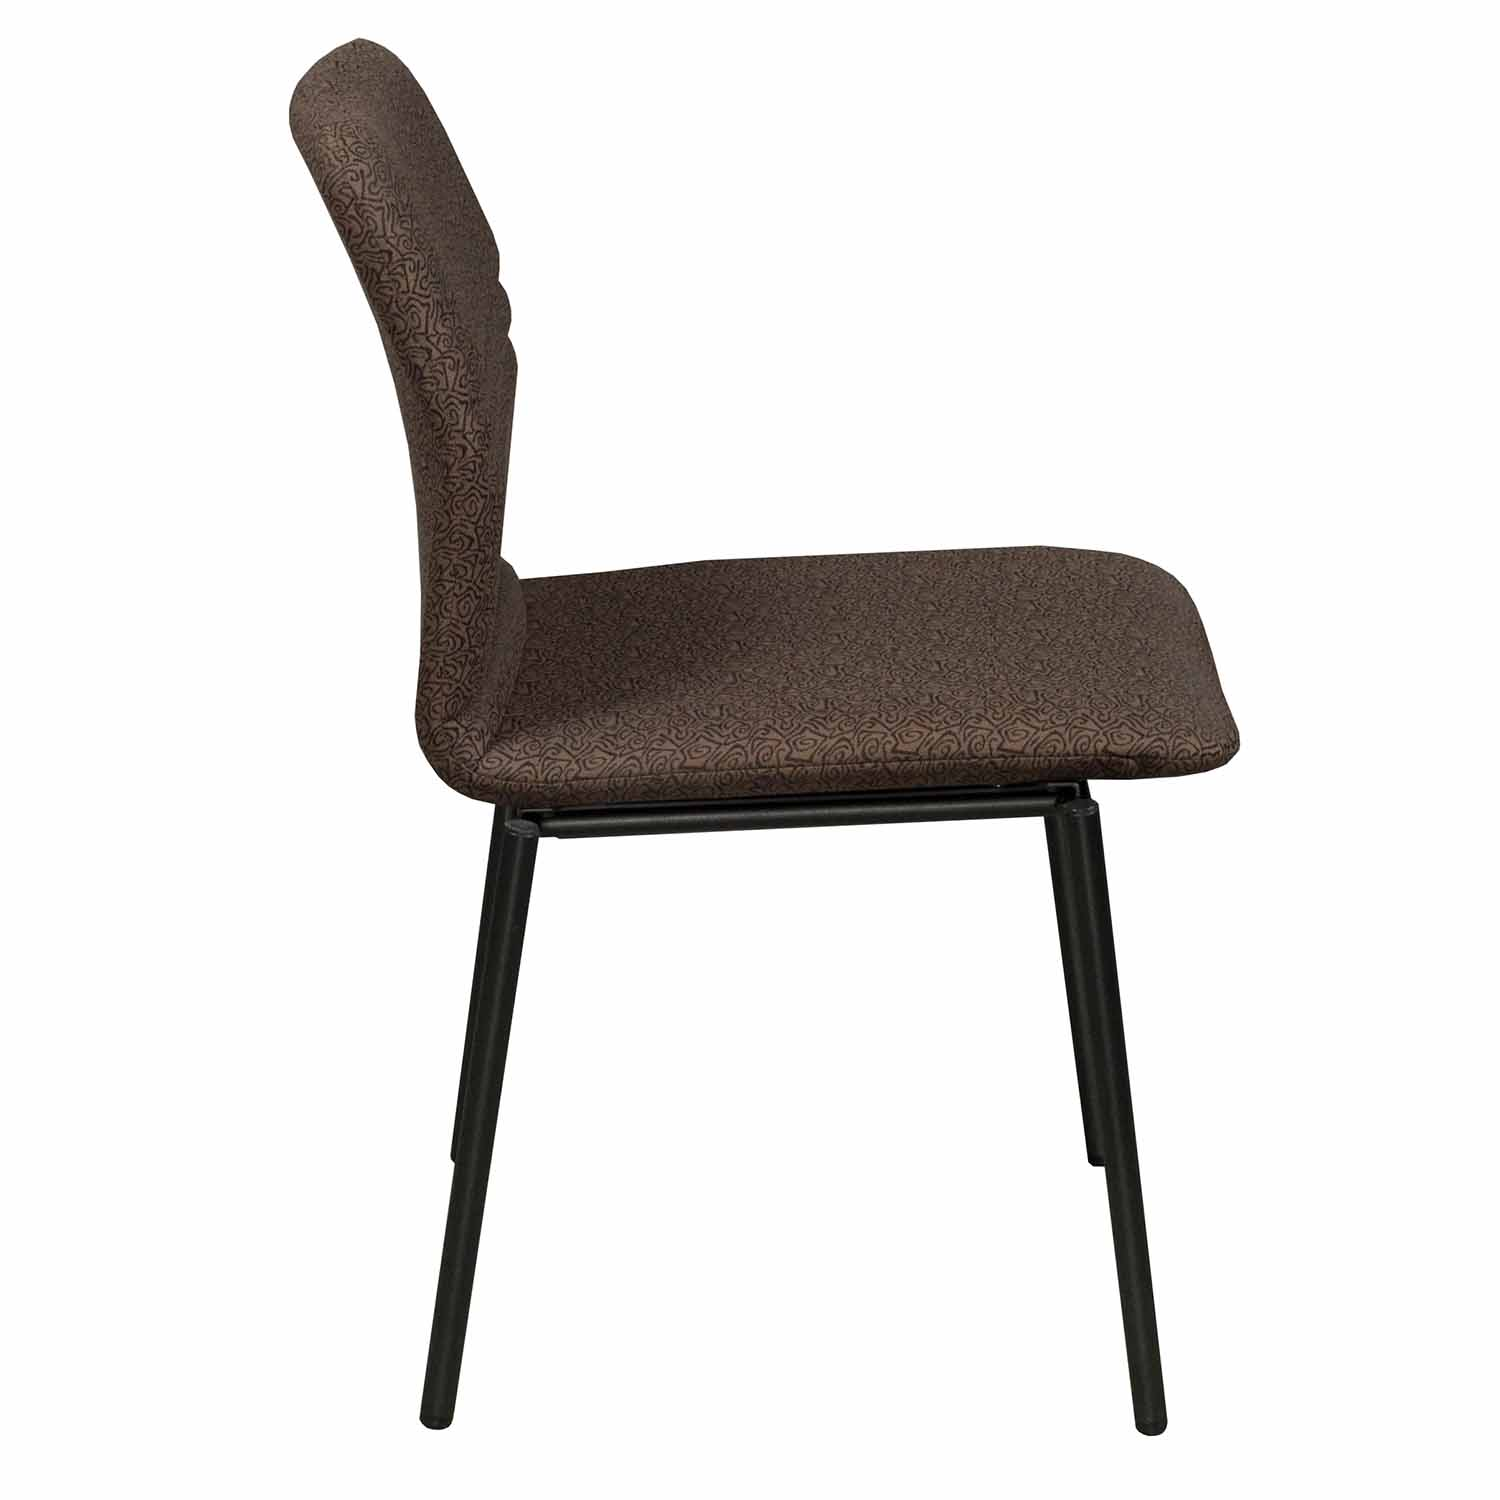 Bounce Chair Stylex Bounce Used Stack Chair Brown National Office Interiors And Liquidators